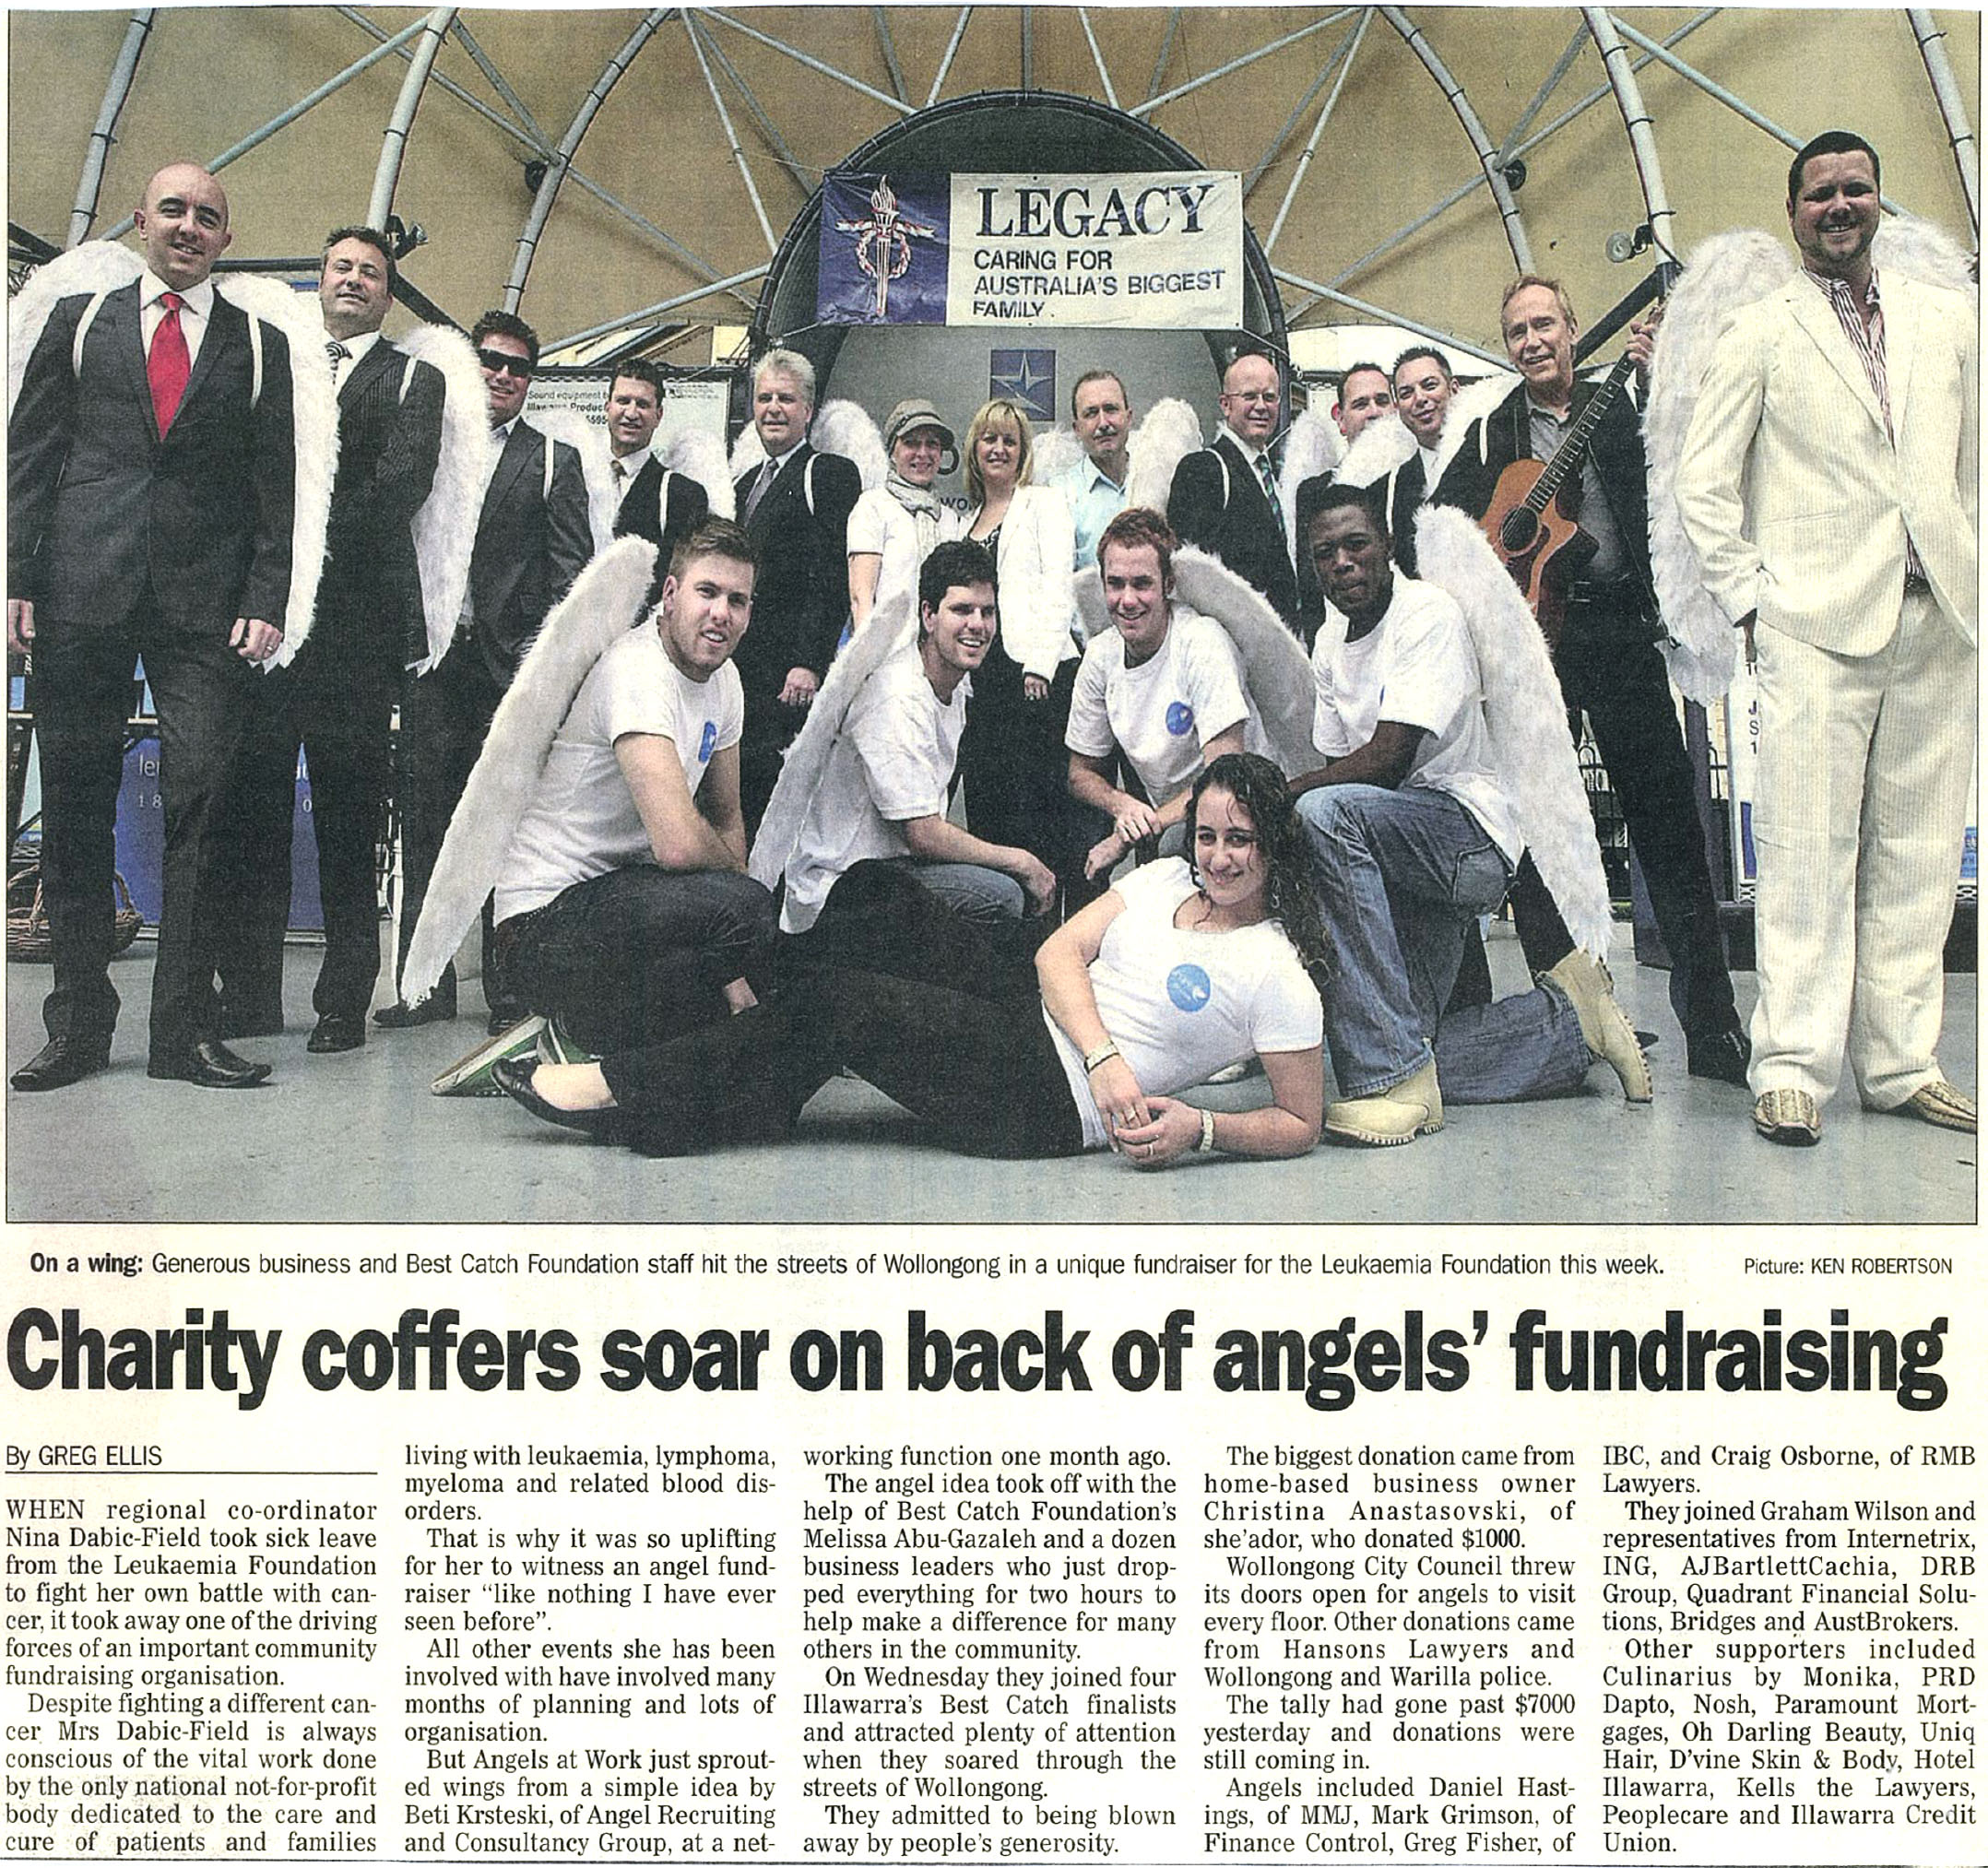 Charity Coffers Soar on Back of Angels' Fundraising.jpg